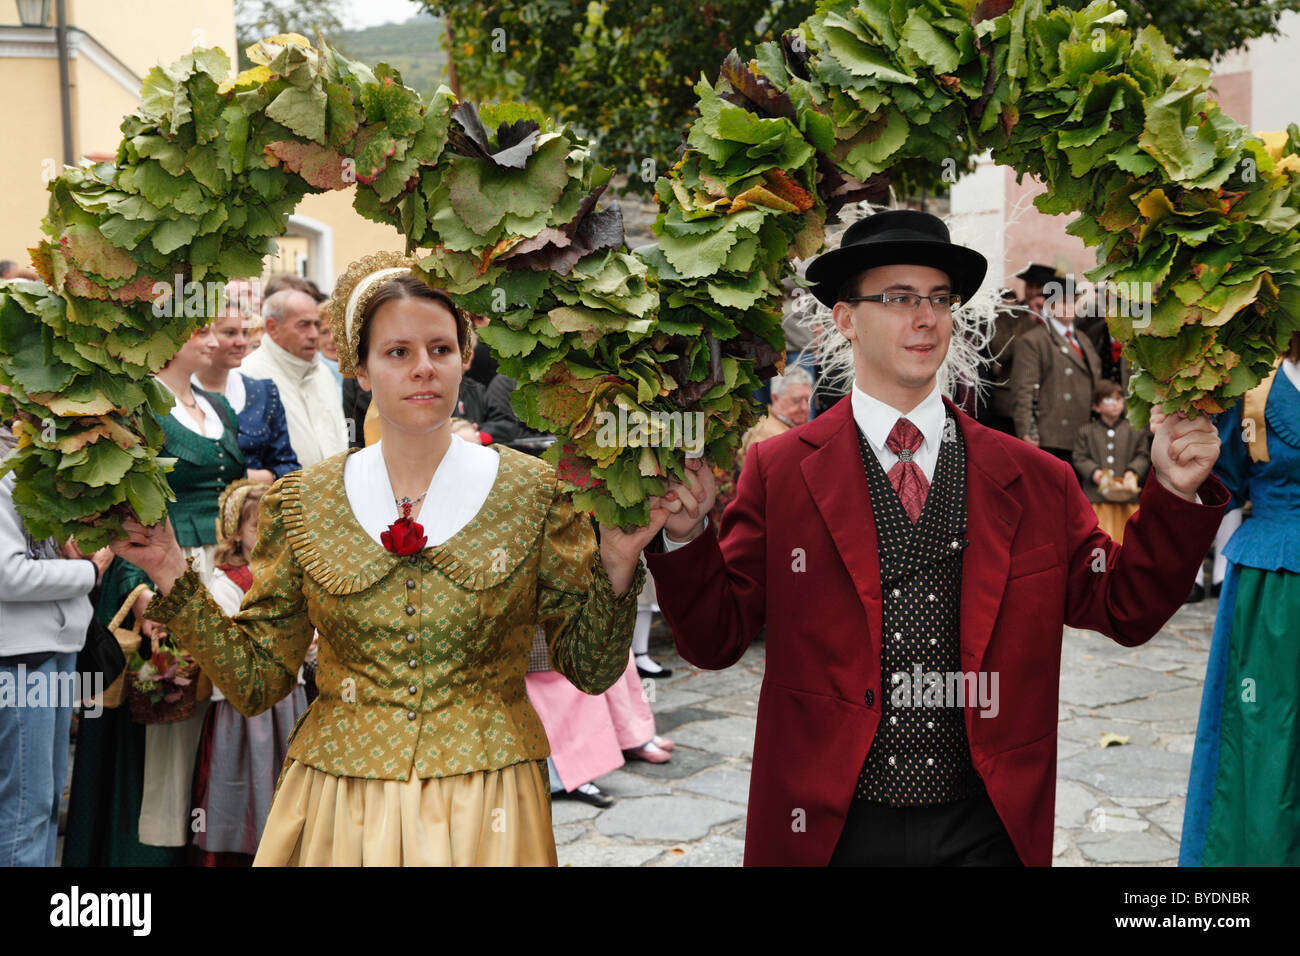 Folk dancers at the Thanksgiving Festival, Spitz, Wachau, Waldviertel, Forest Quarter, Lower Austria, Austria, Europe Stock Photo